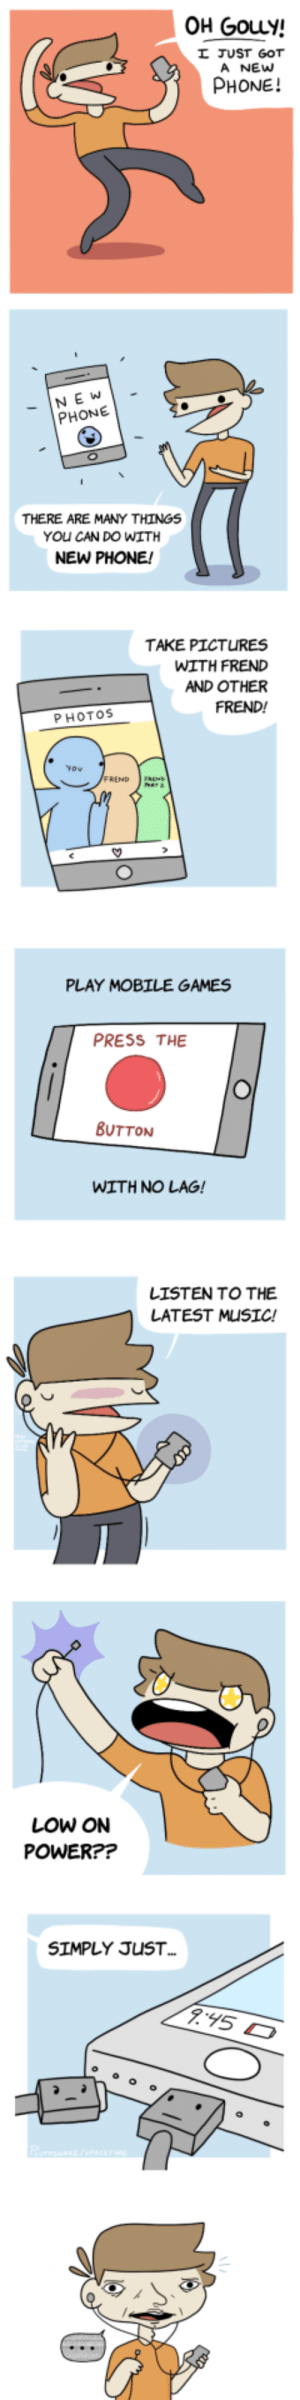 The Reality of a New Phone [OC]: OH GouLy!  JUST GOT  A NEw  PHONE!  NE W  PHONE  THERE ARE MANY THINGS  YOu CAN DO WITH  NEW PHONE!  TAKE PICTURES  WITH FRED  AND OTHER  FREND!  PHOTOS  PLAY MOBILE GAMES  PRESS THE  BUTTON  WITH NO LAG!  LISTEN TO THE  LATEST MUSIC!  LOW ON  POWER??  SIMPLY JUST The Reality of a New Phone [OC]